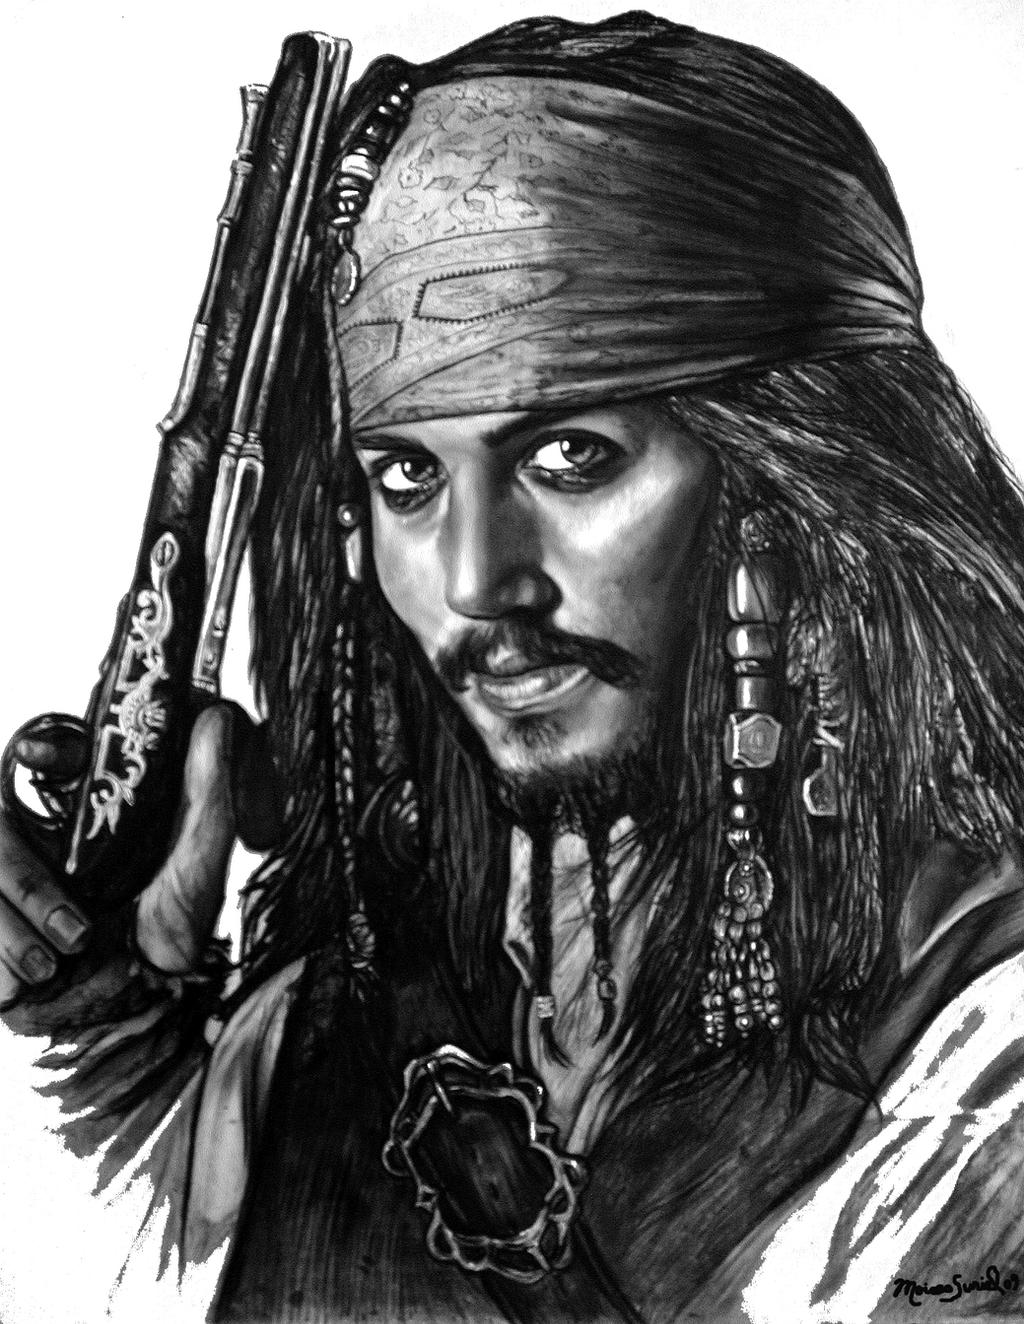 pirate drawing 2 by moisessurielart on deviantart